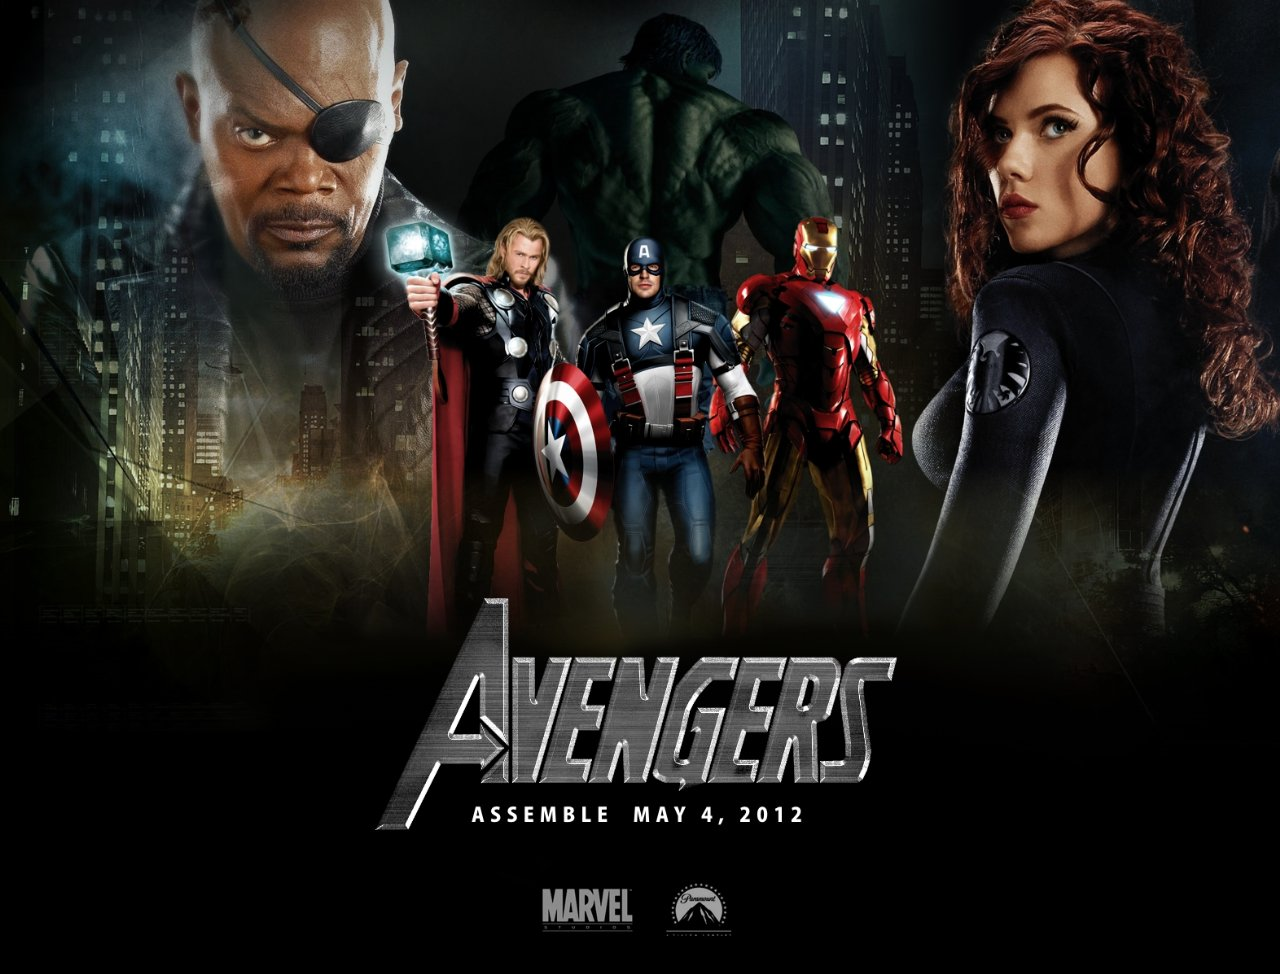 The Avengers Movie Top 10 Most Anticipated Movie Sequels of 2012